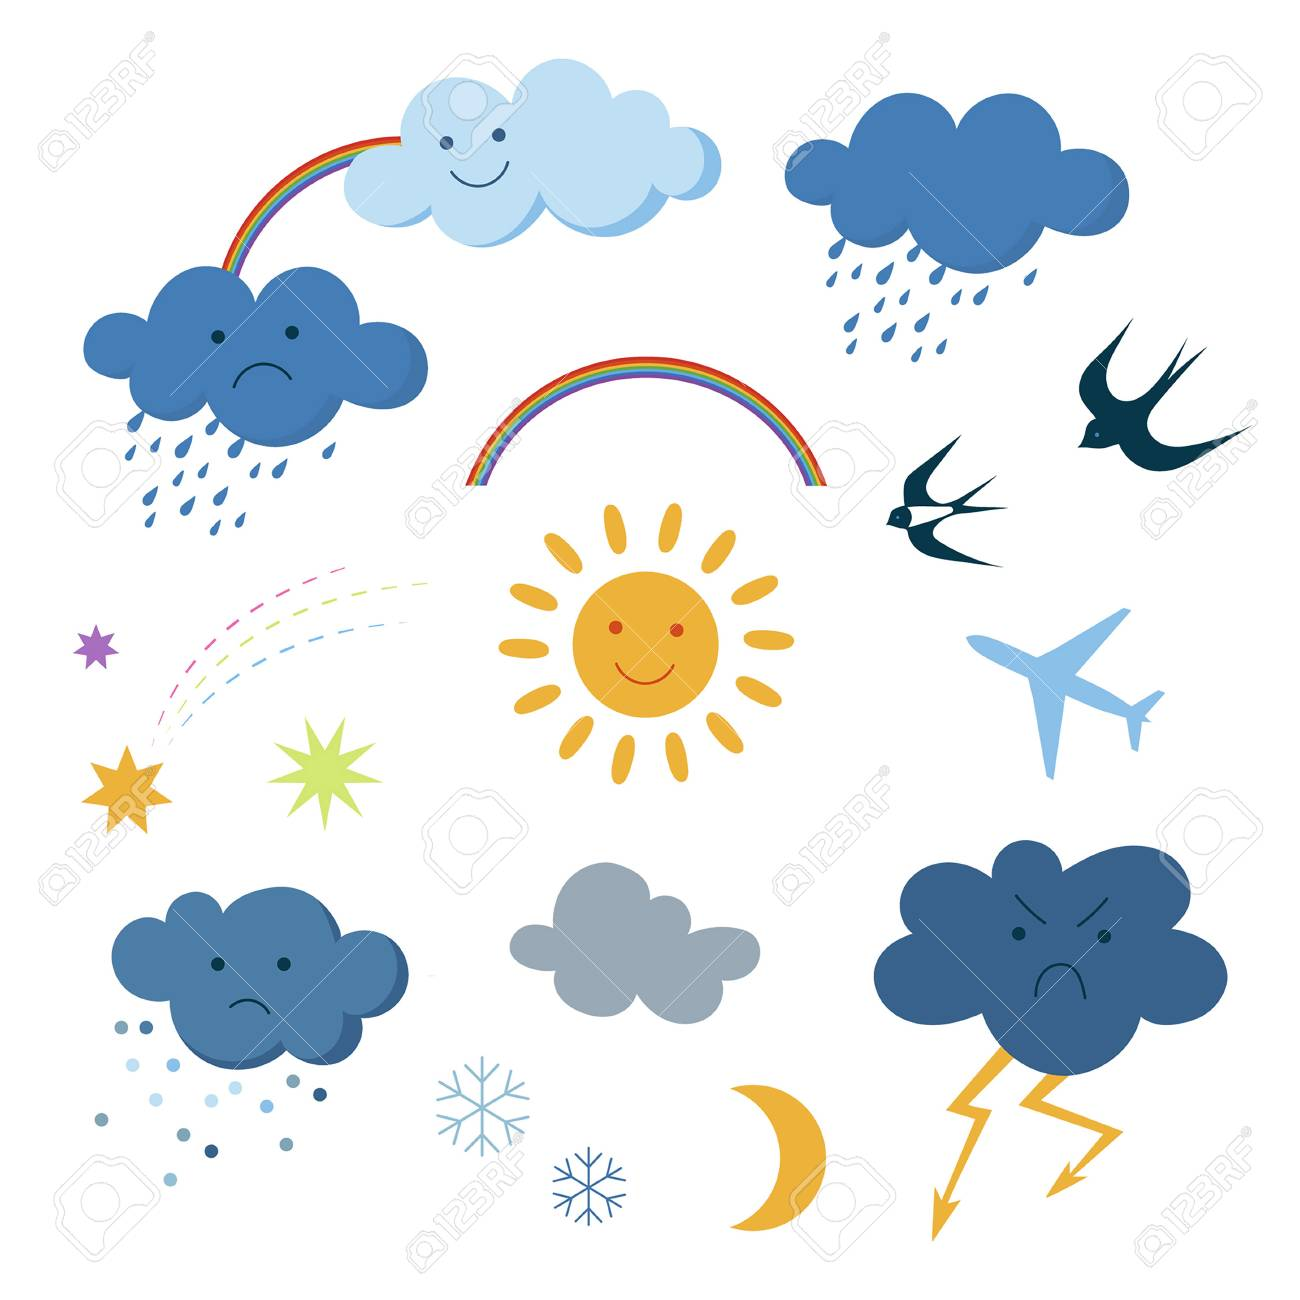 hight resolution of cute beautiful cartoon sky objects weather forecast set clipart collection stock vector 98614010